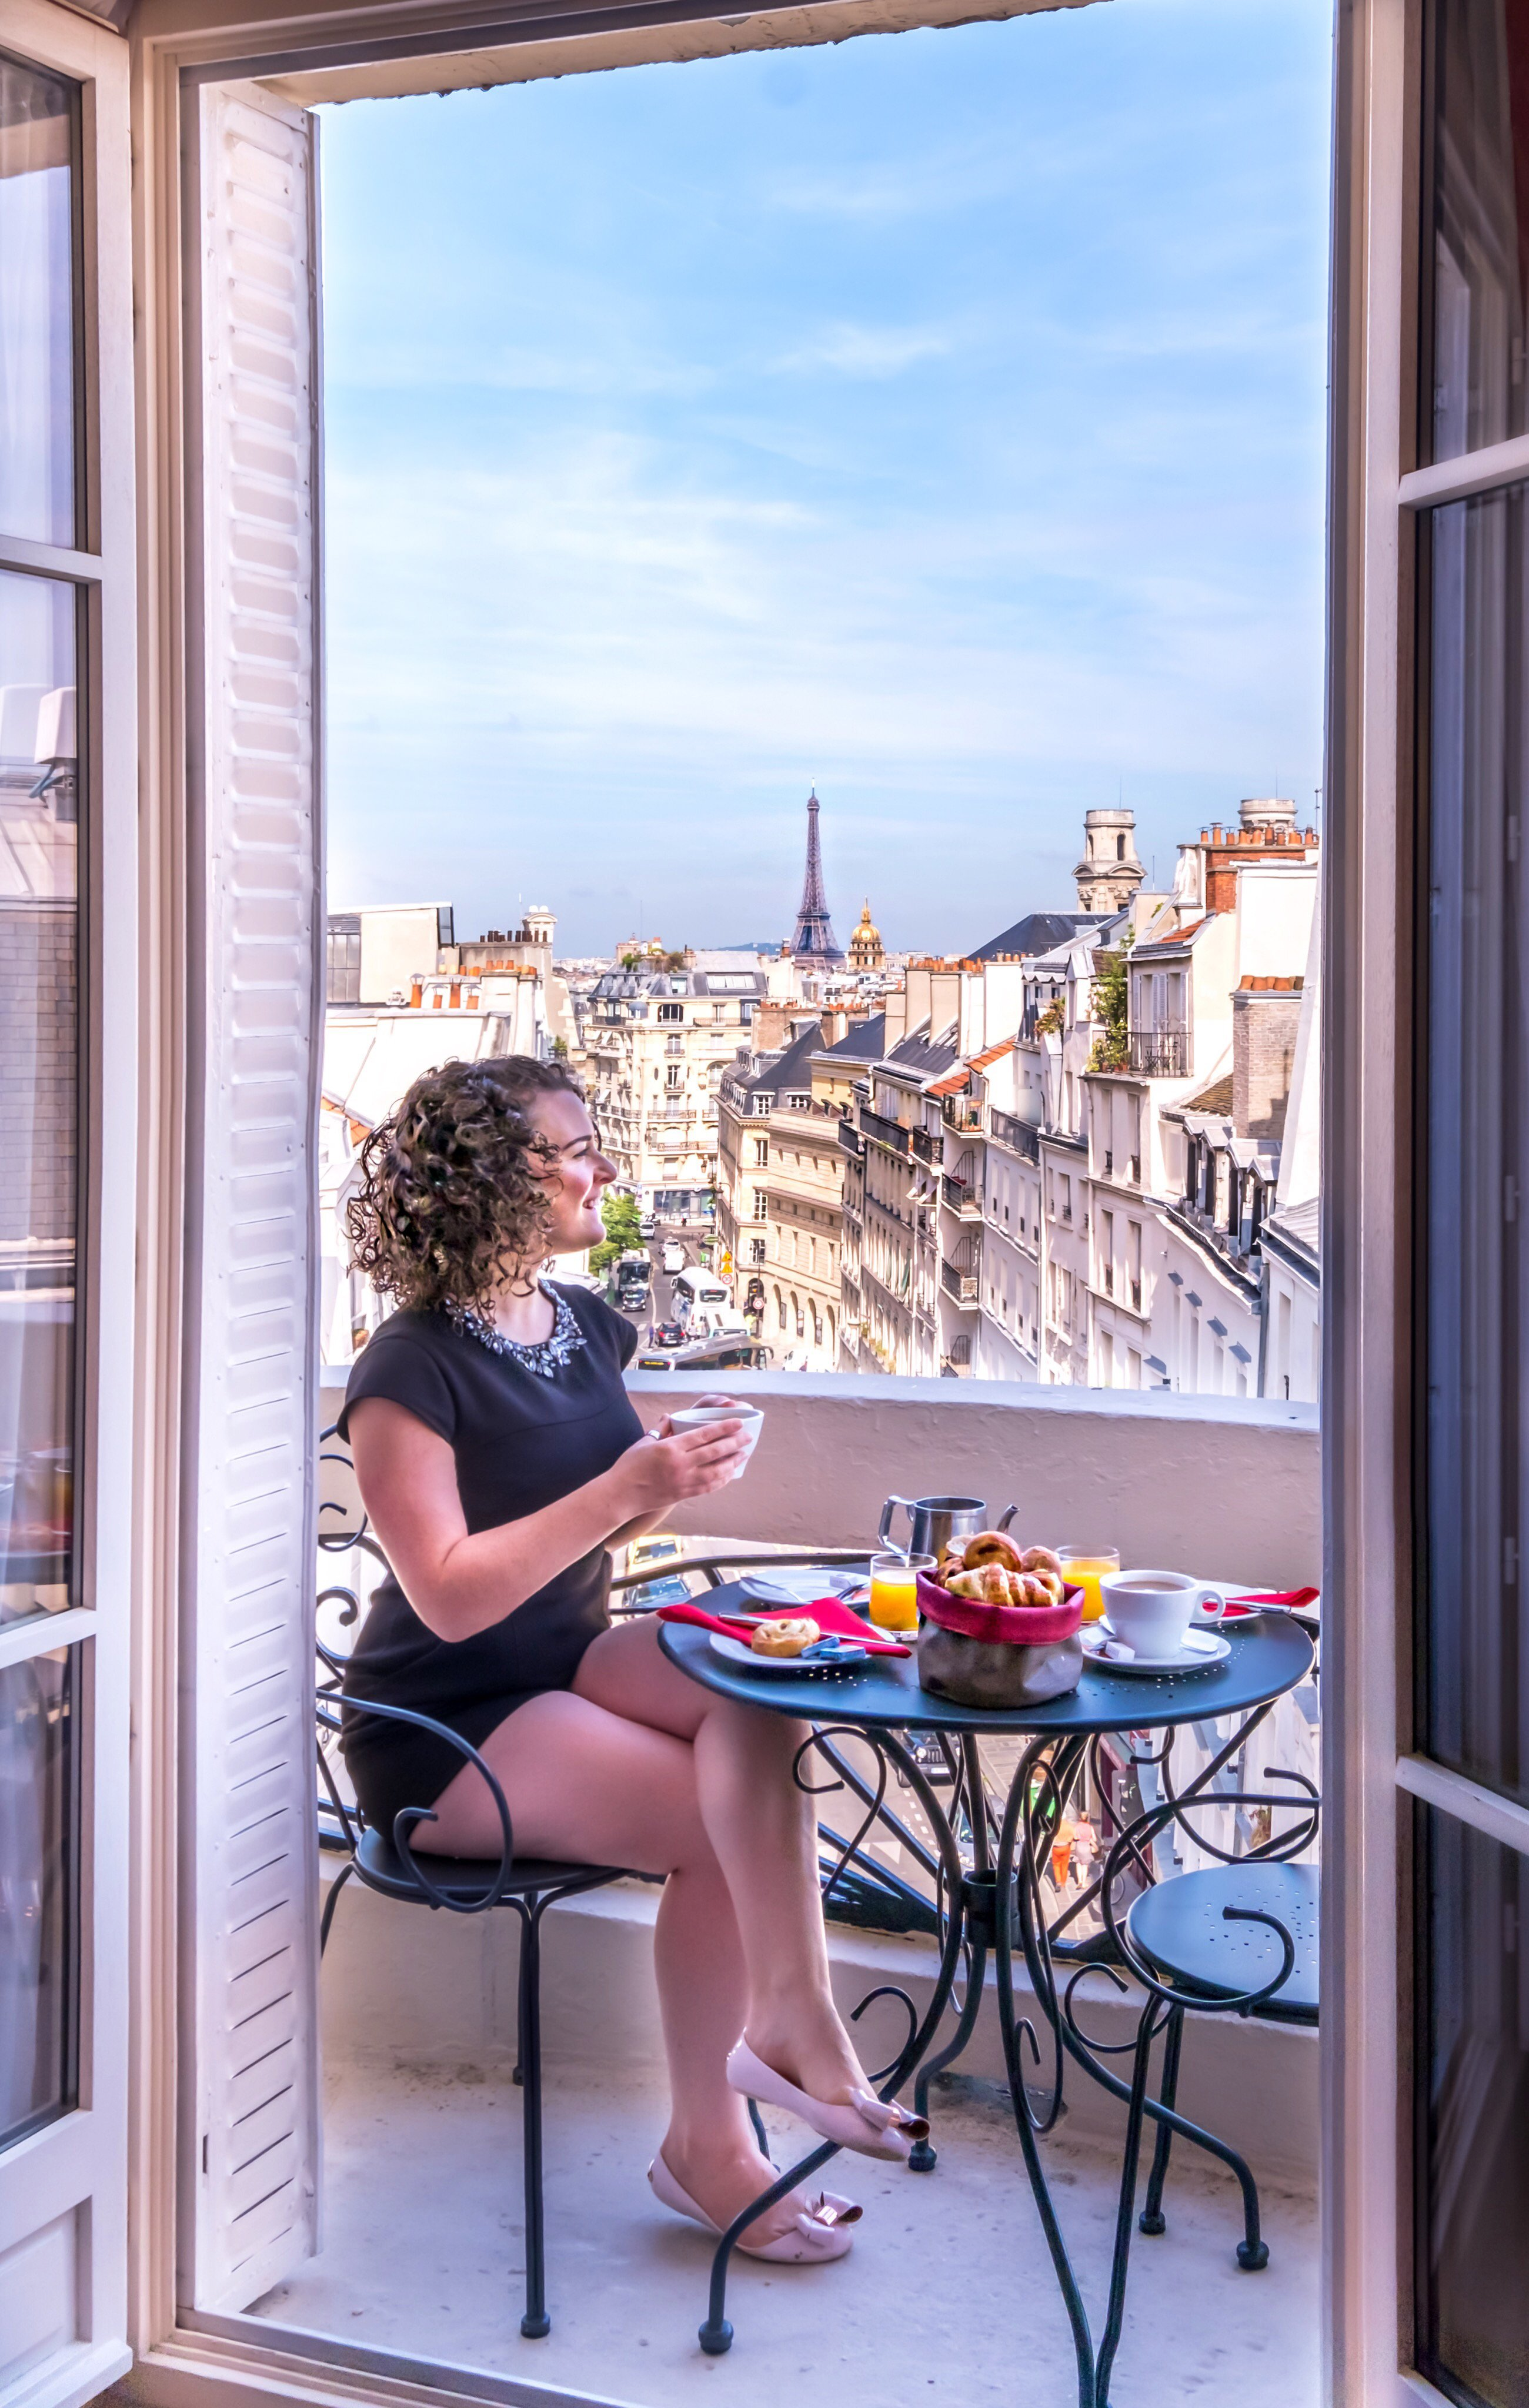 Hotel Trianon Rive Gauche Breakfast on Balcony